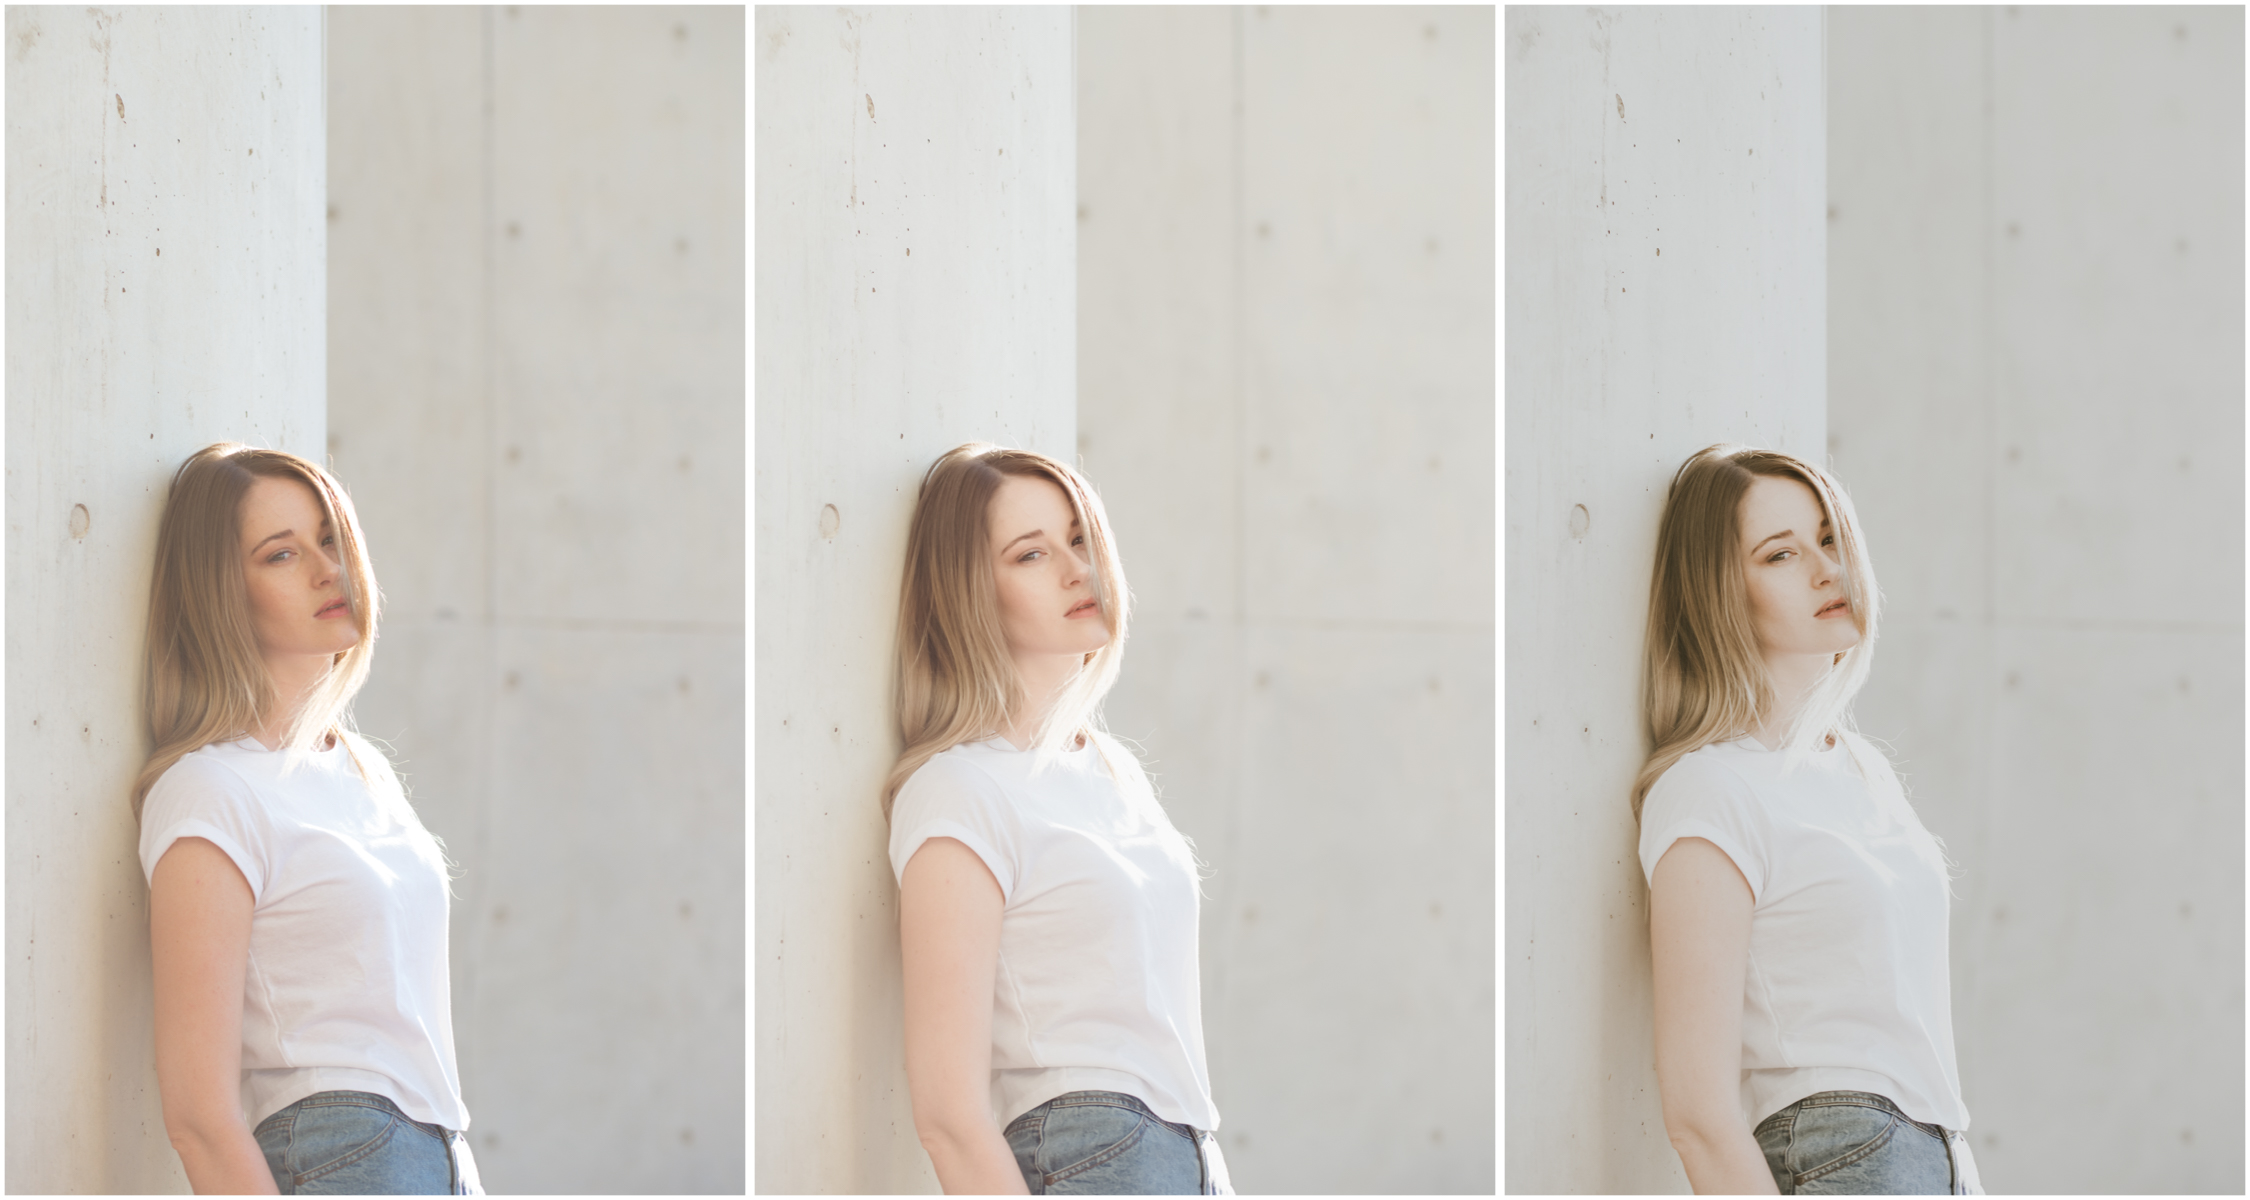 RAW (left), A6 Lightroom preset (middle), A6 with contrast, colour,and clarity tweaks